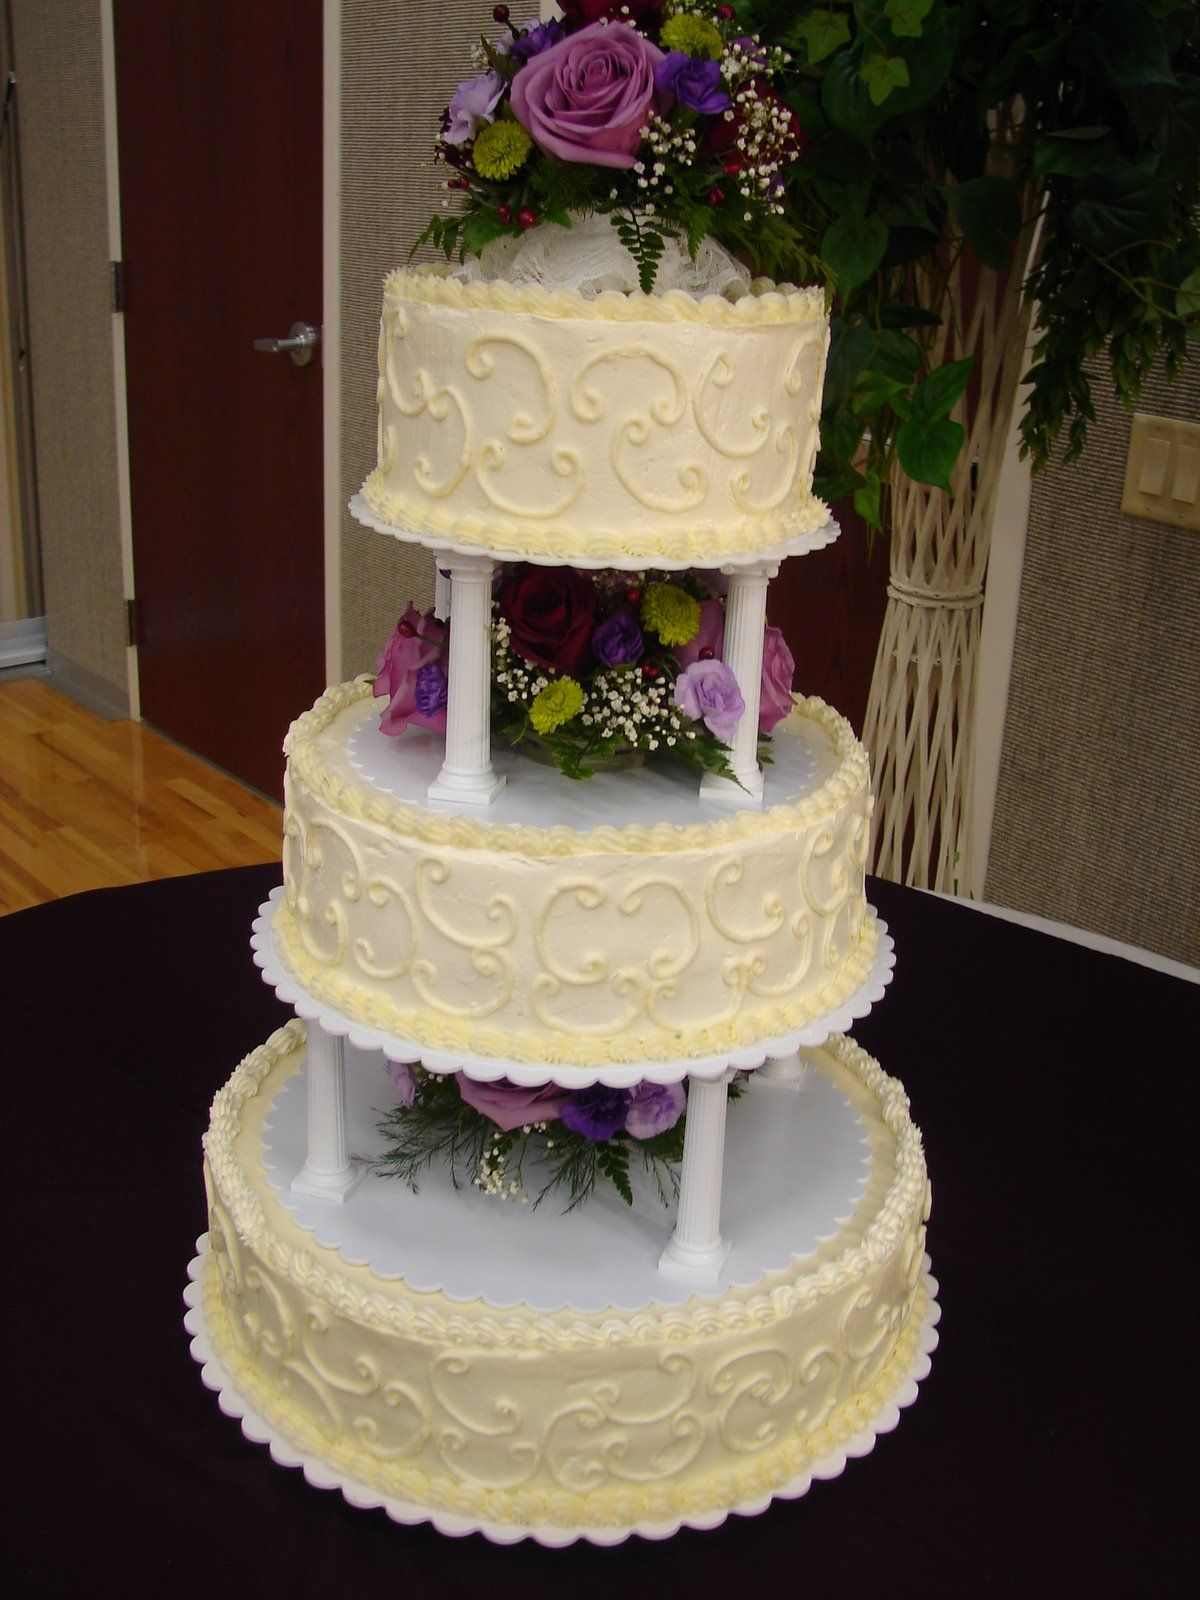 Walmart 3 Tier Wedding Cakes The three tiers were made from